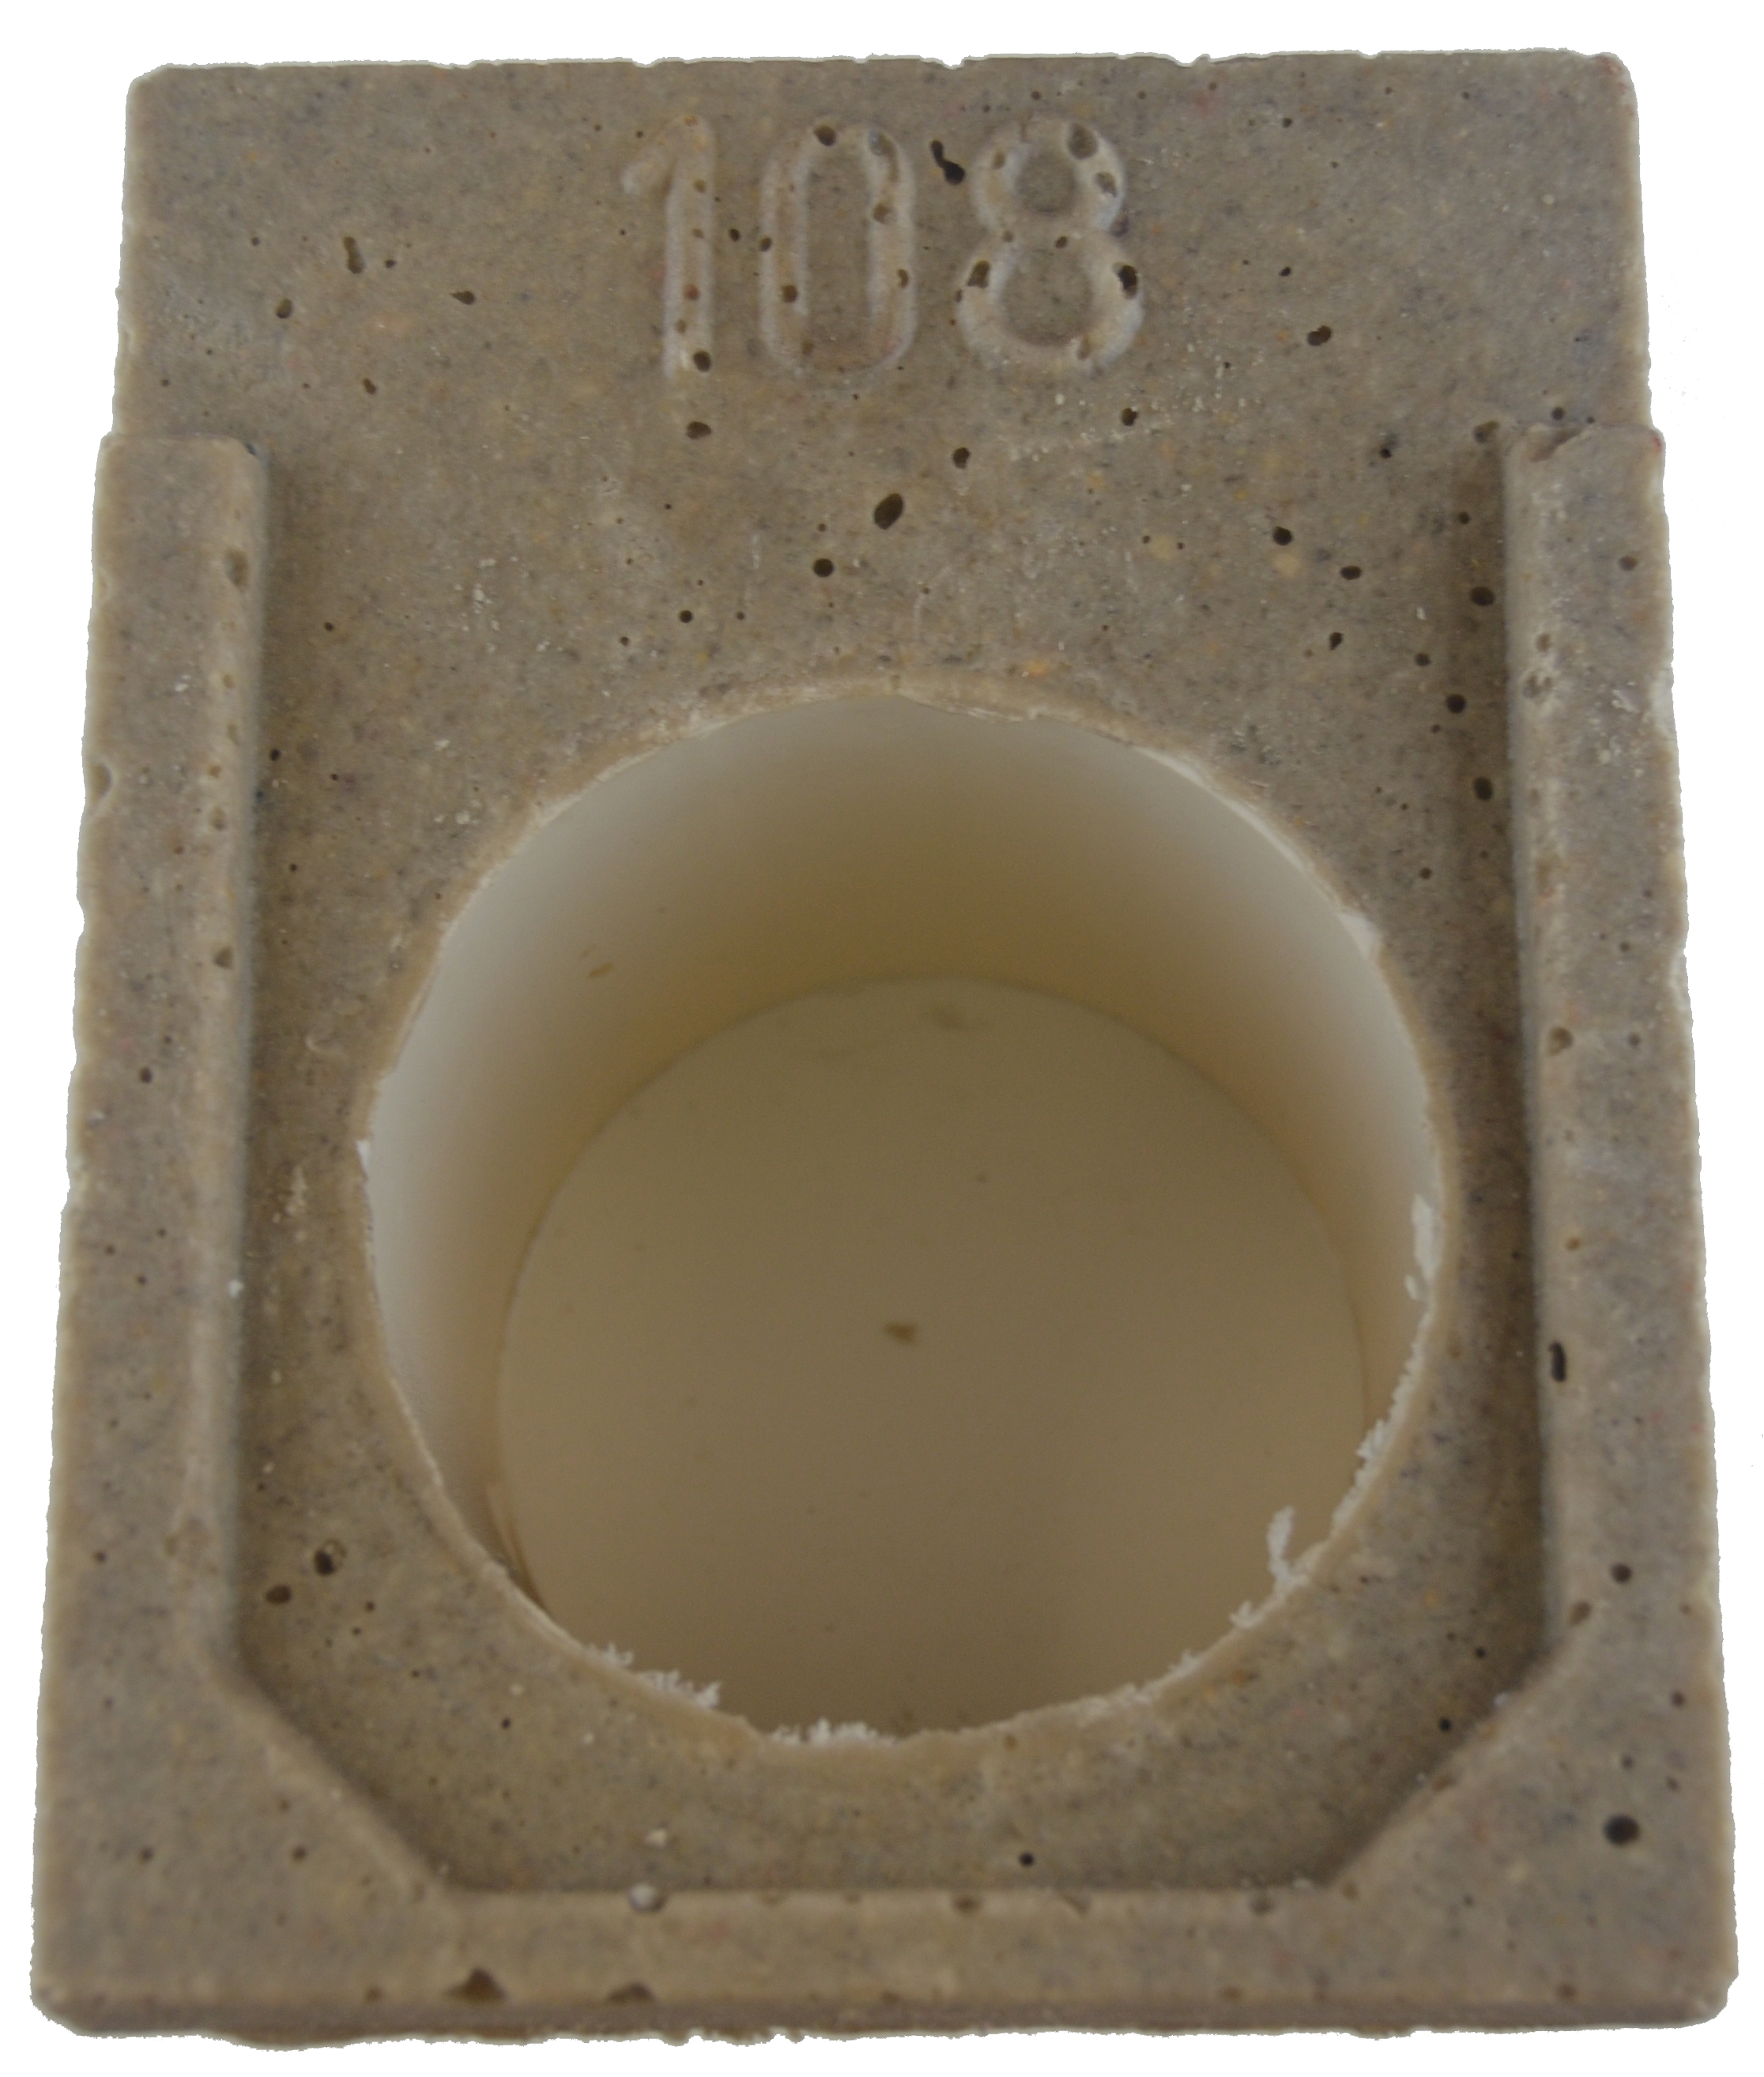 Polydrain Outlet Plate #058